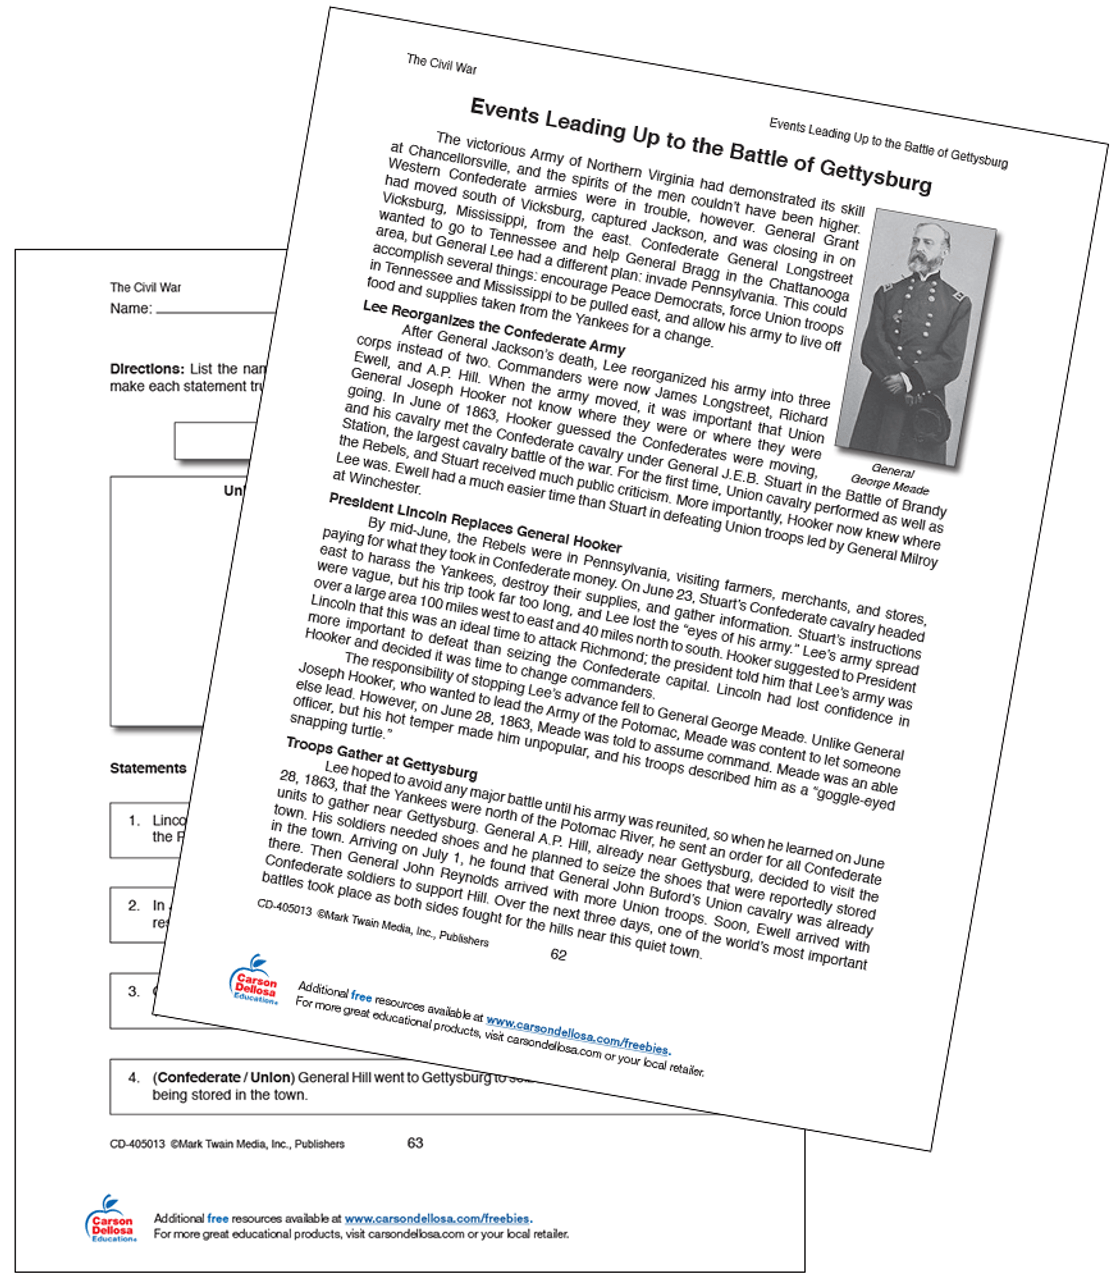 medium resolution of Events Leading Up to the Battle of Gettysburg Grade 5-12 Free Printable    Carson Dellosa